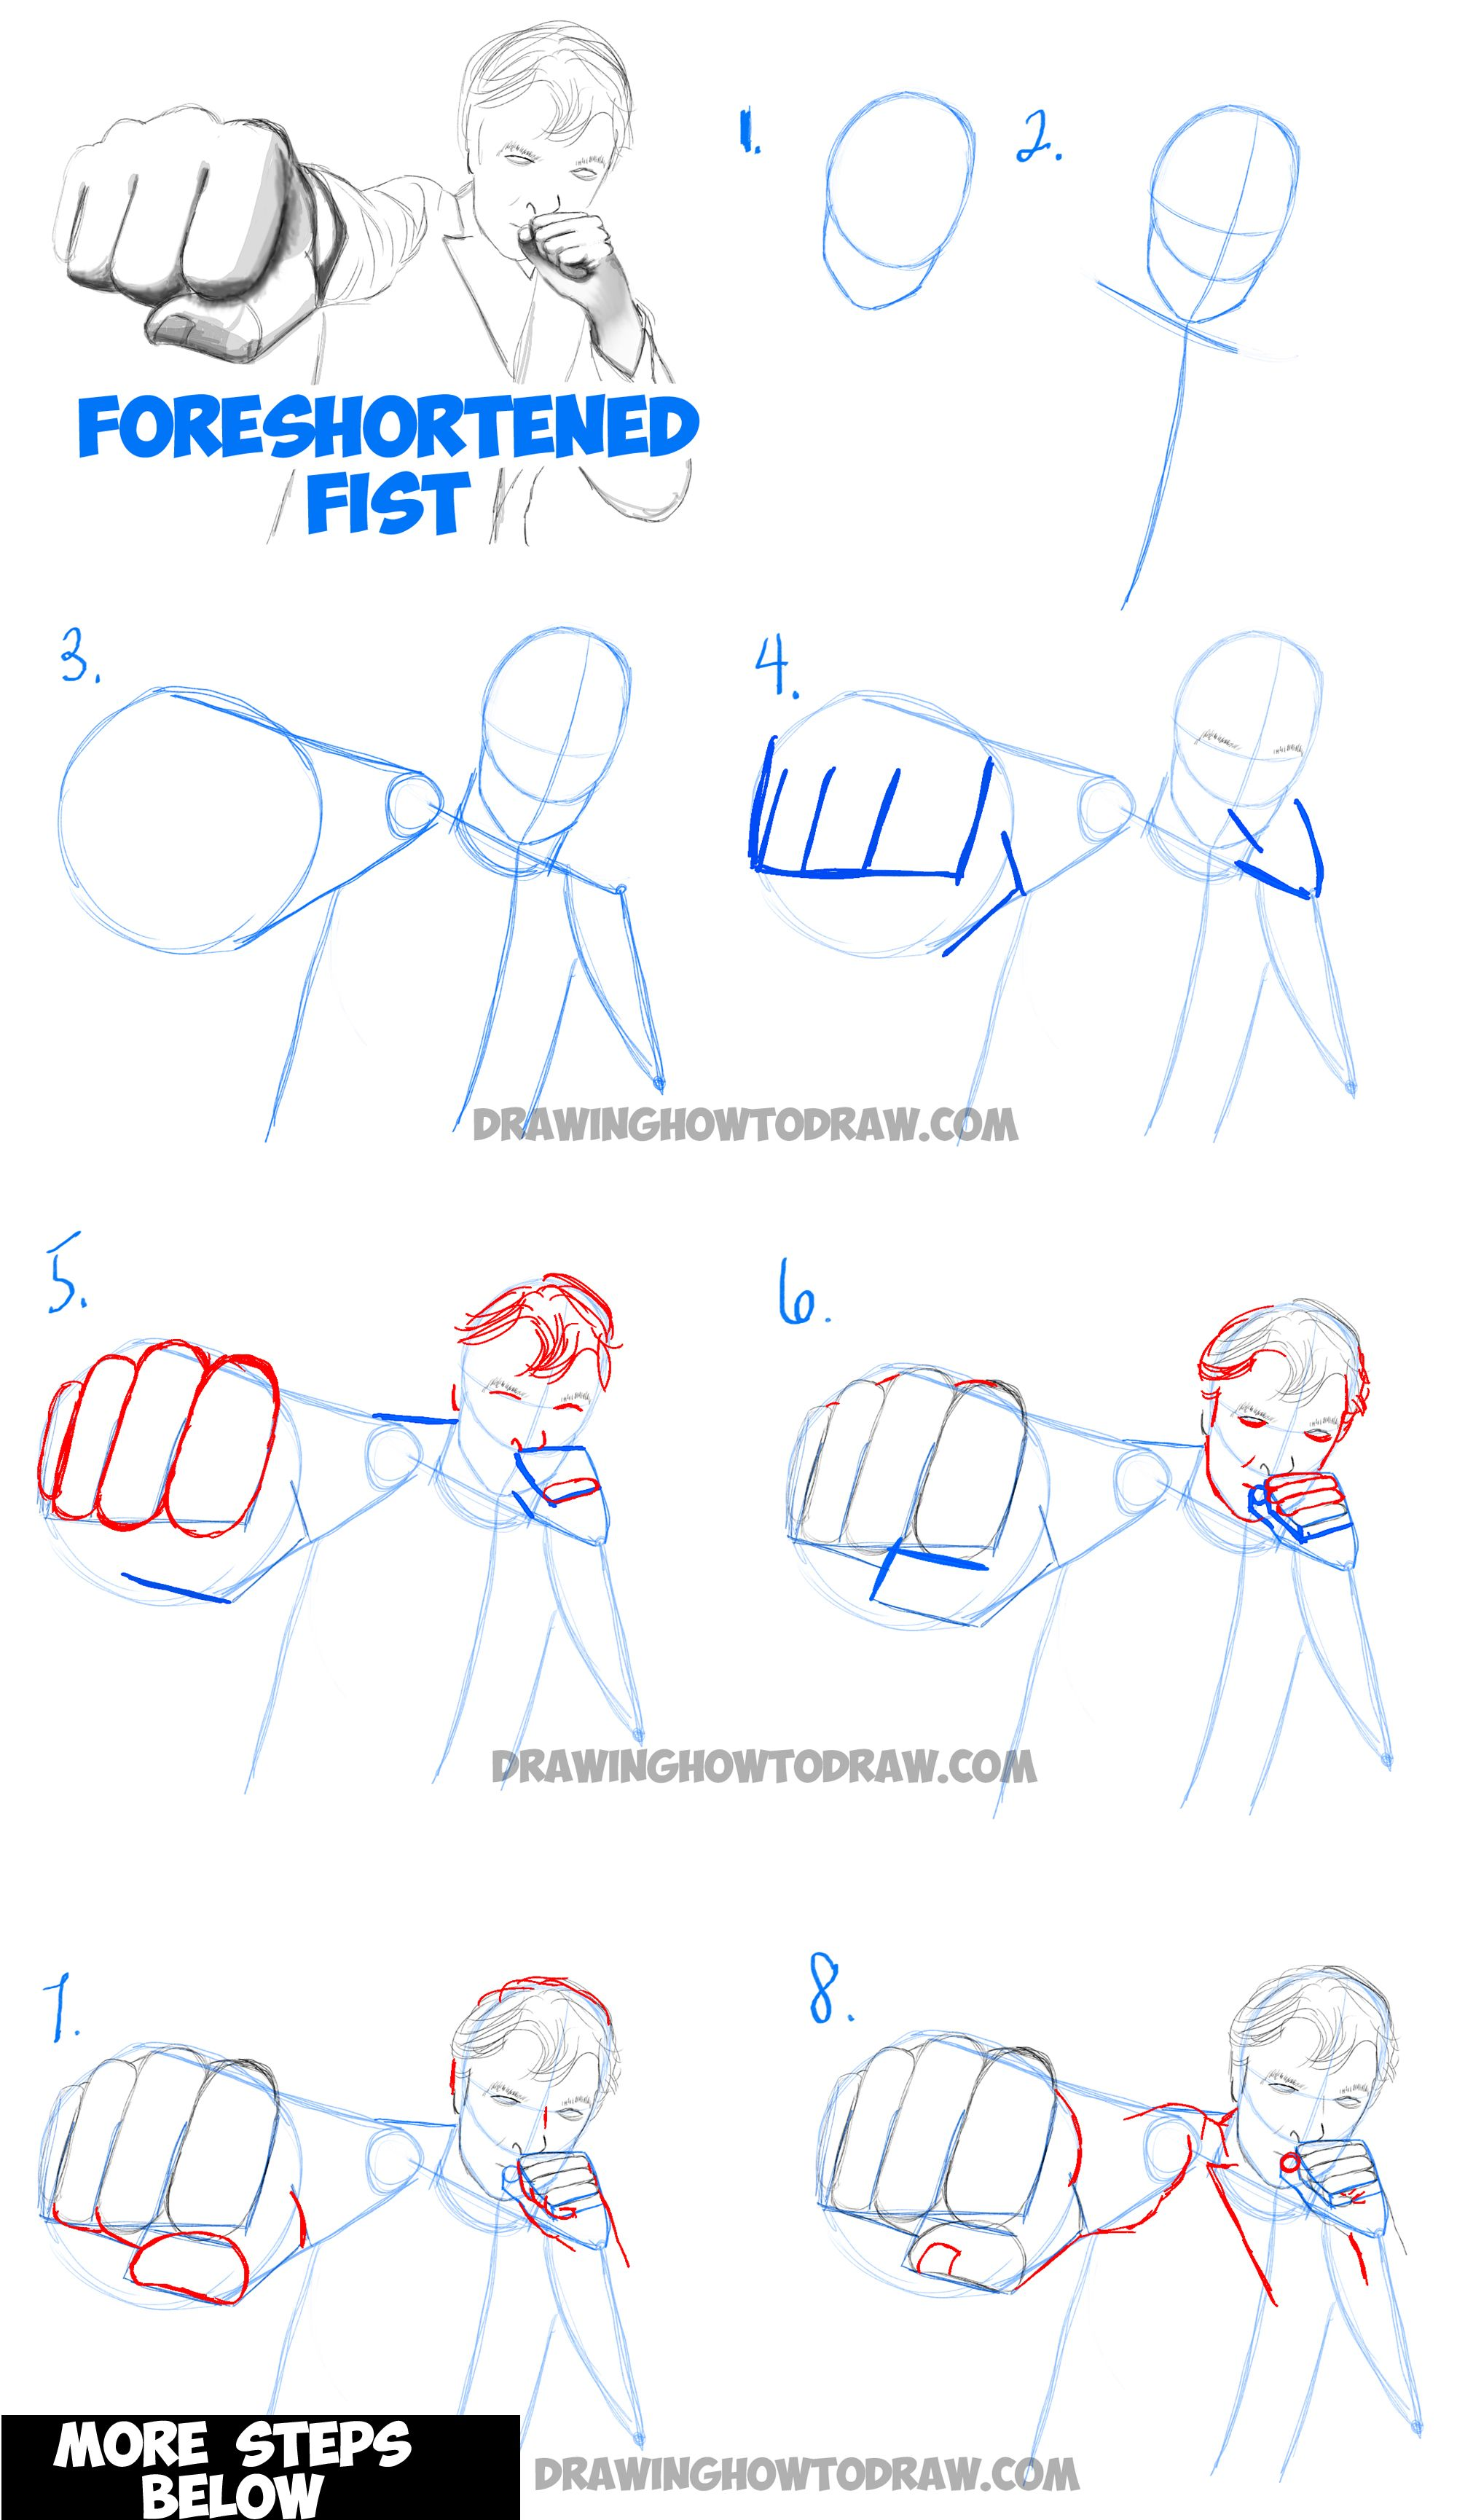 Learn How To Draw Foreshortened Fists Step By Step